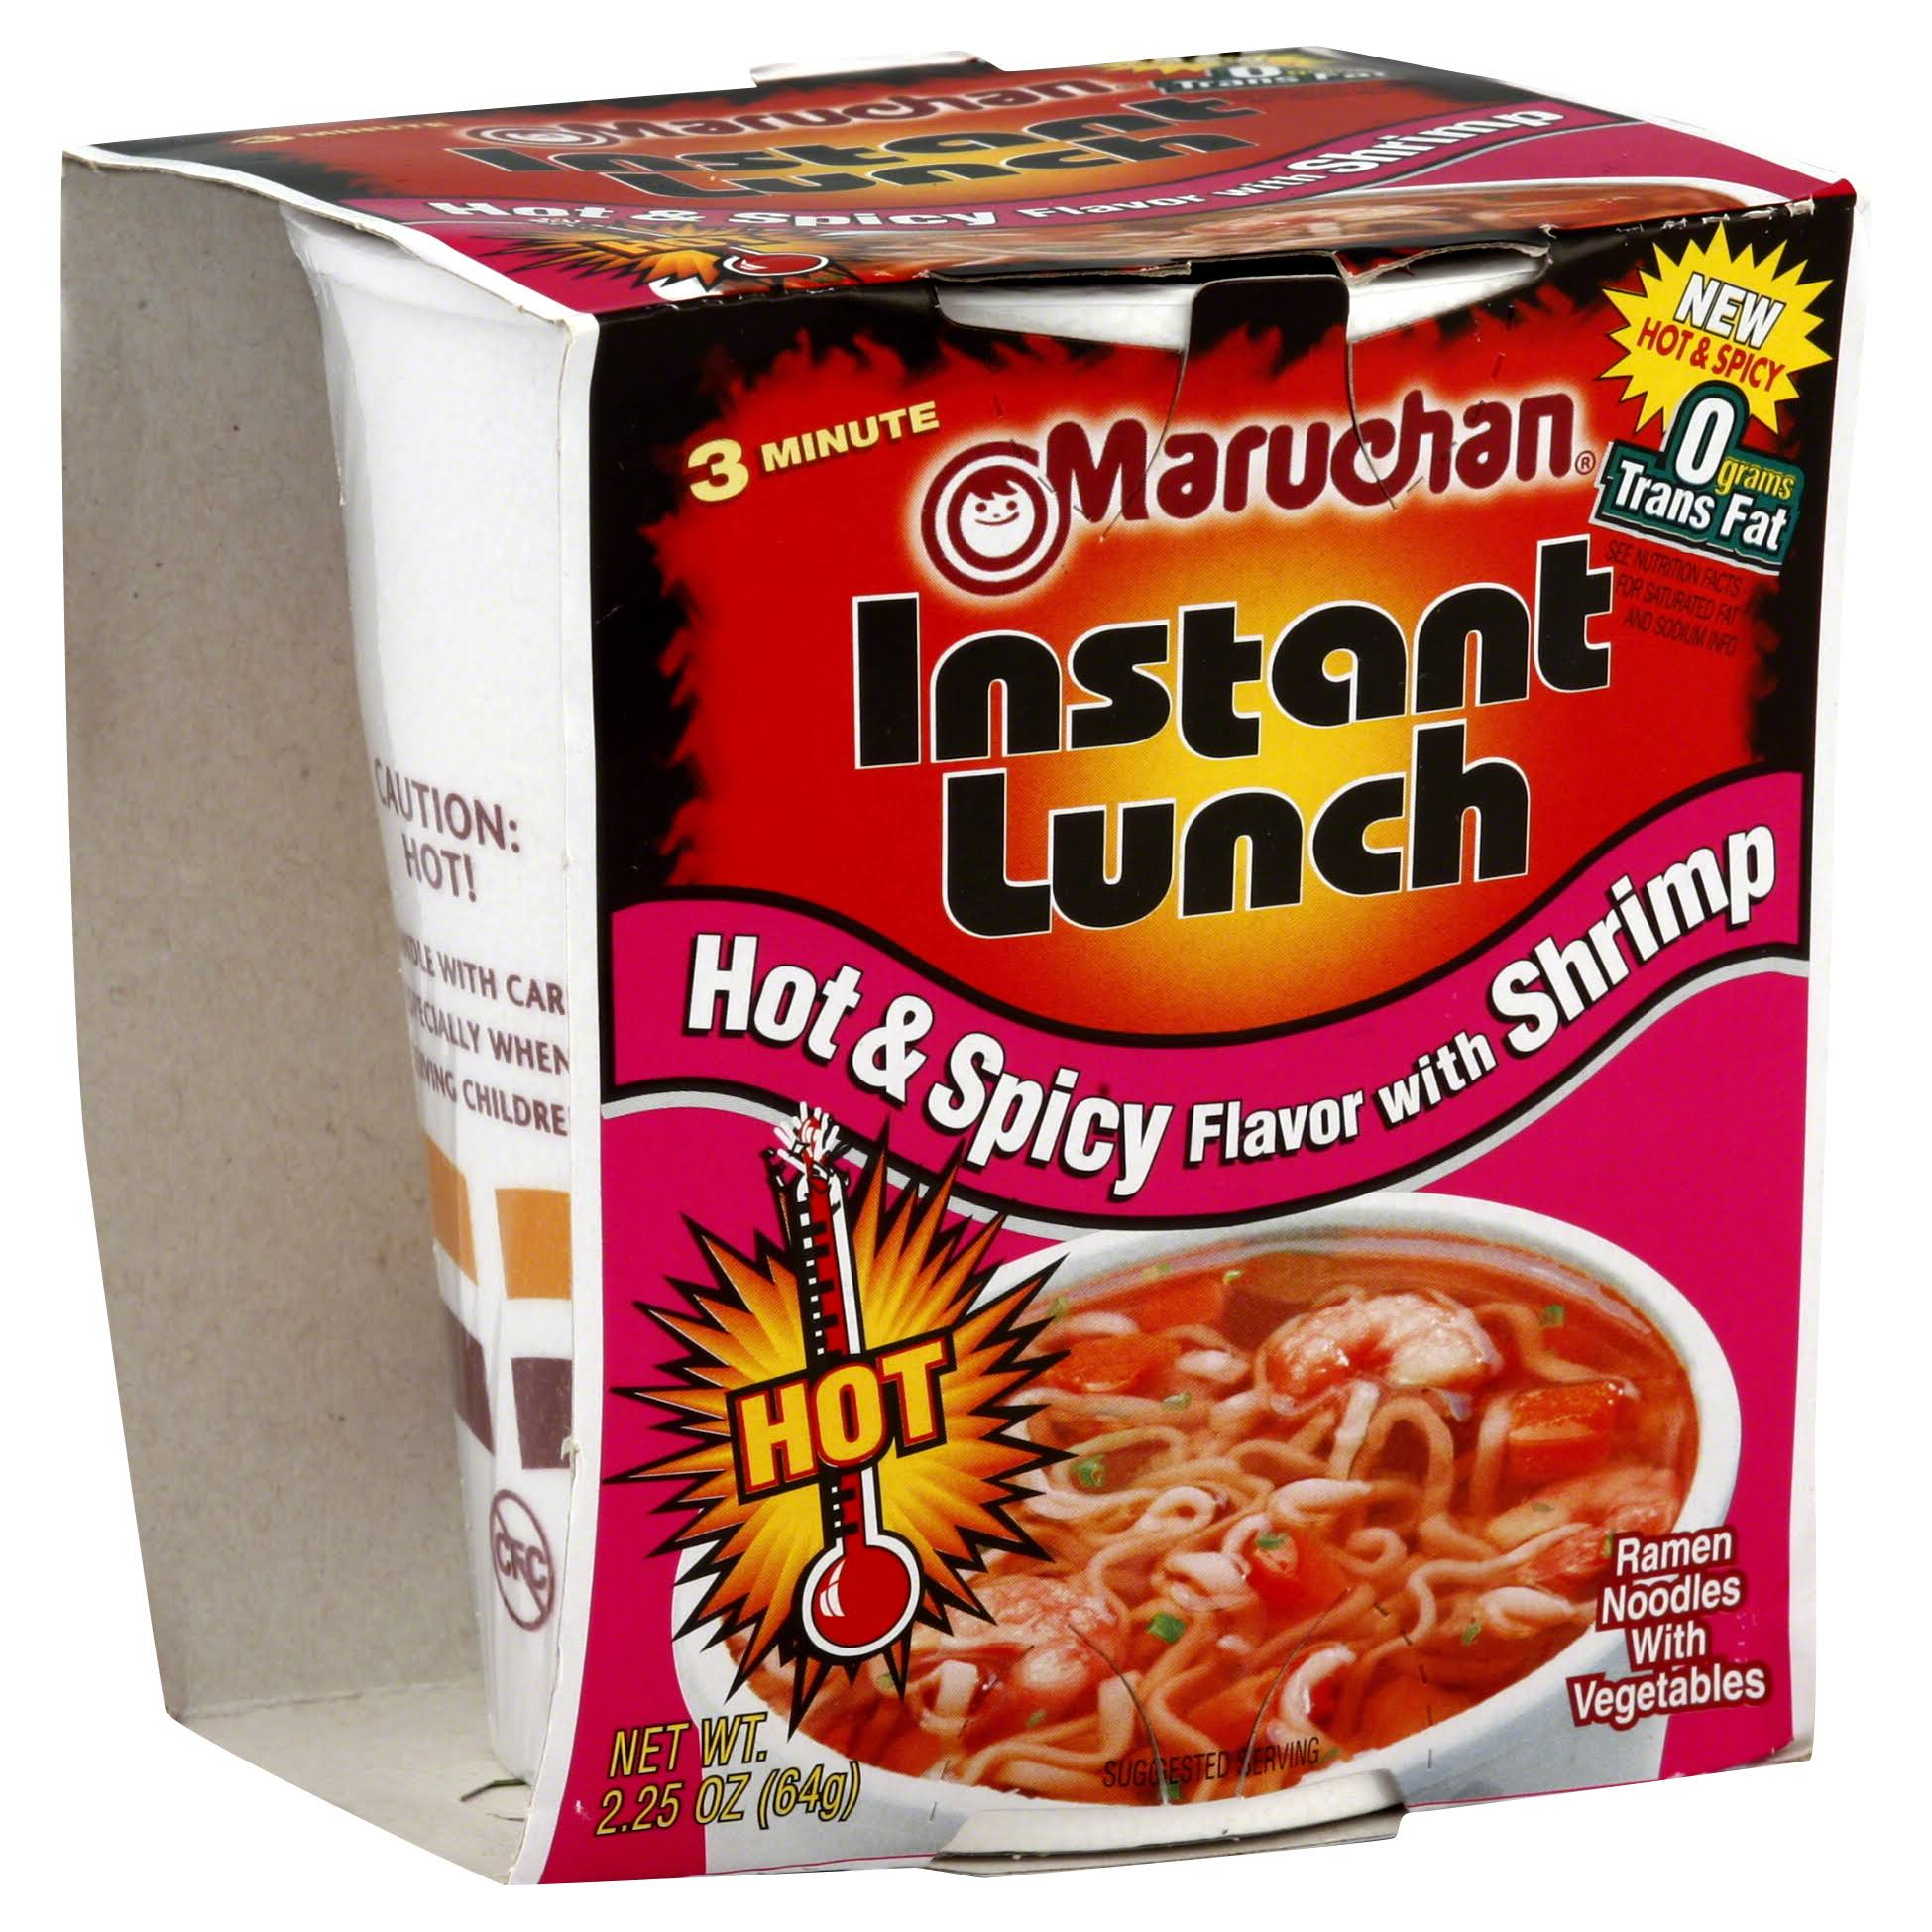 Maruchan Instant Lunch Ramen Noodle Soup - Hot and Spicy Flavor with Shrimp, 2.25oz